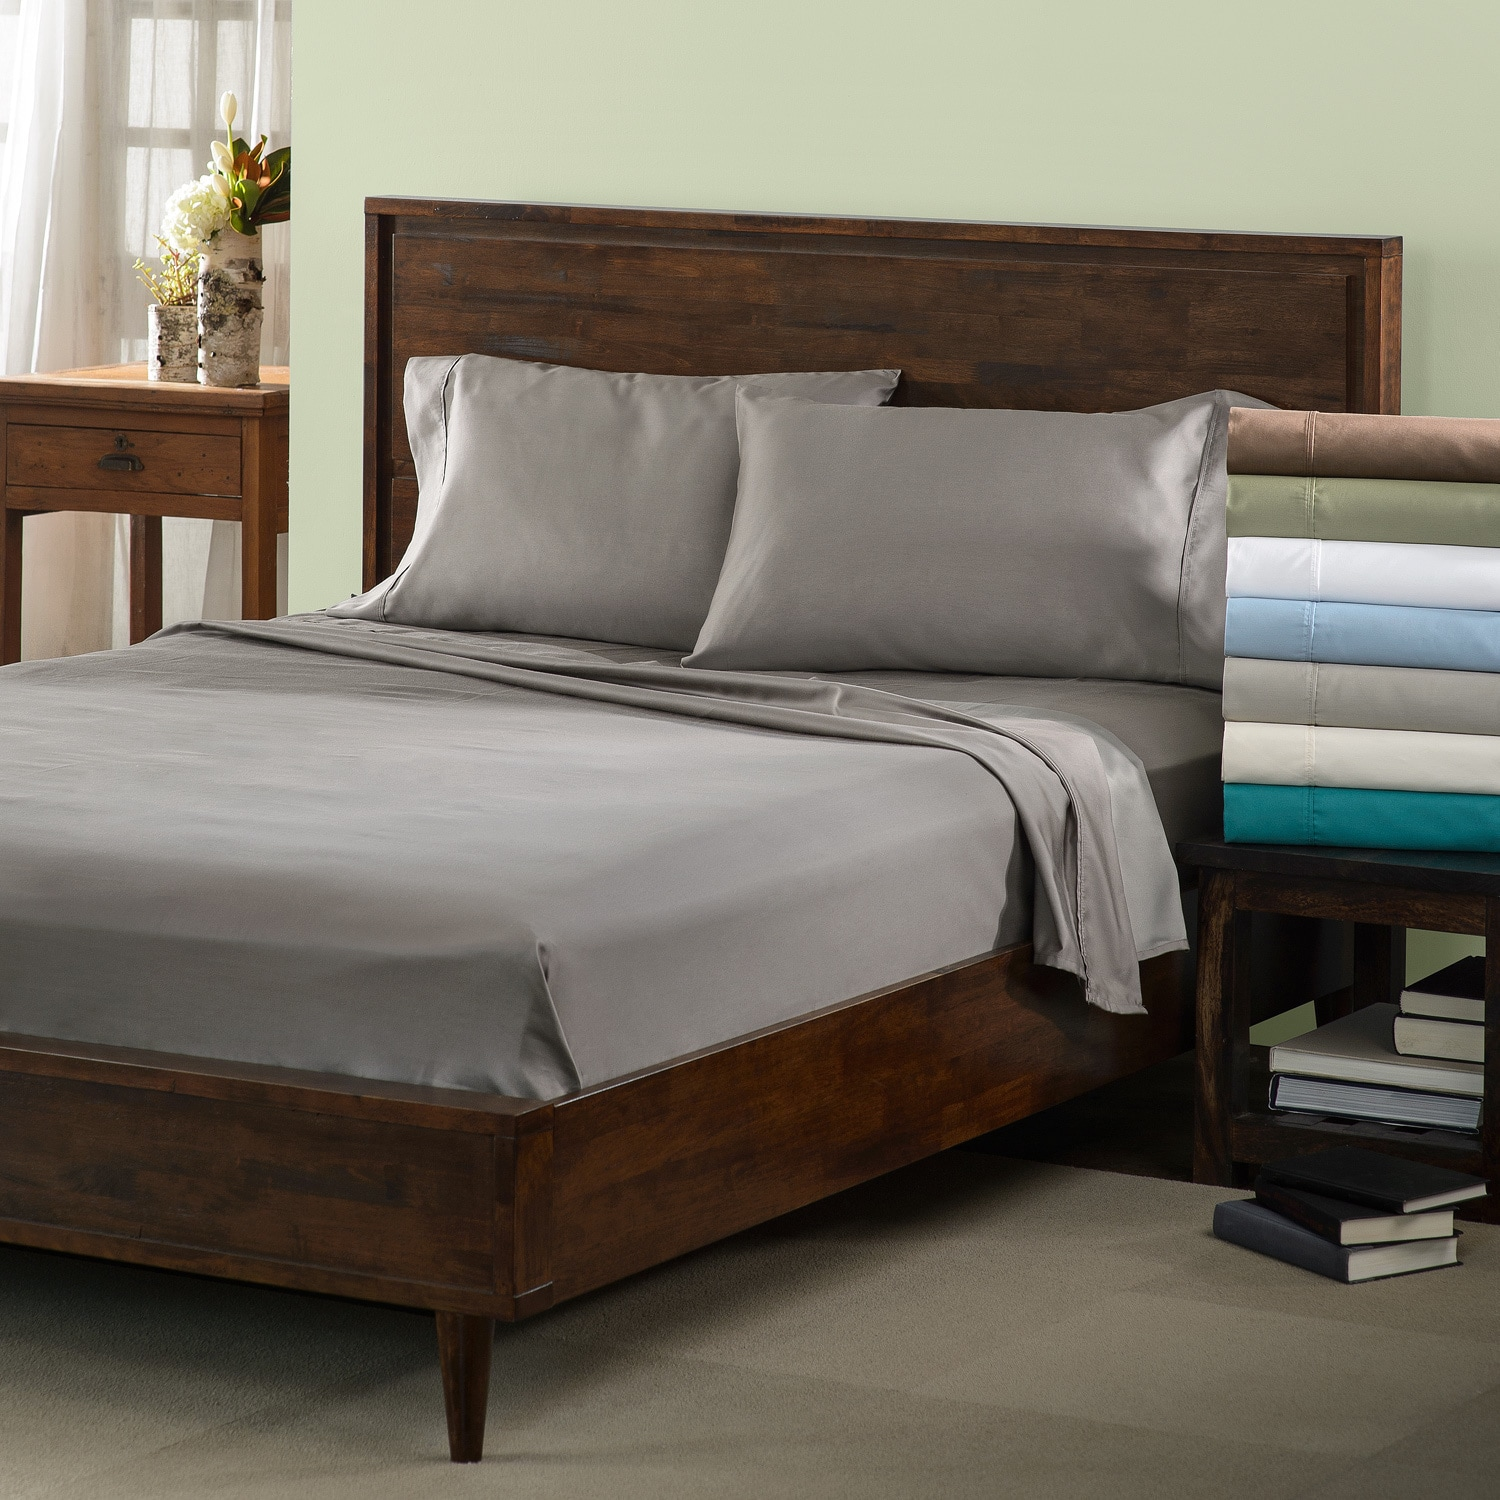 Superior 600 Thread Count Deep Pocket Olympic Queen Cotton Blend ...